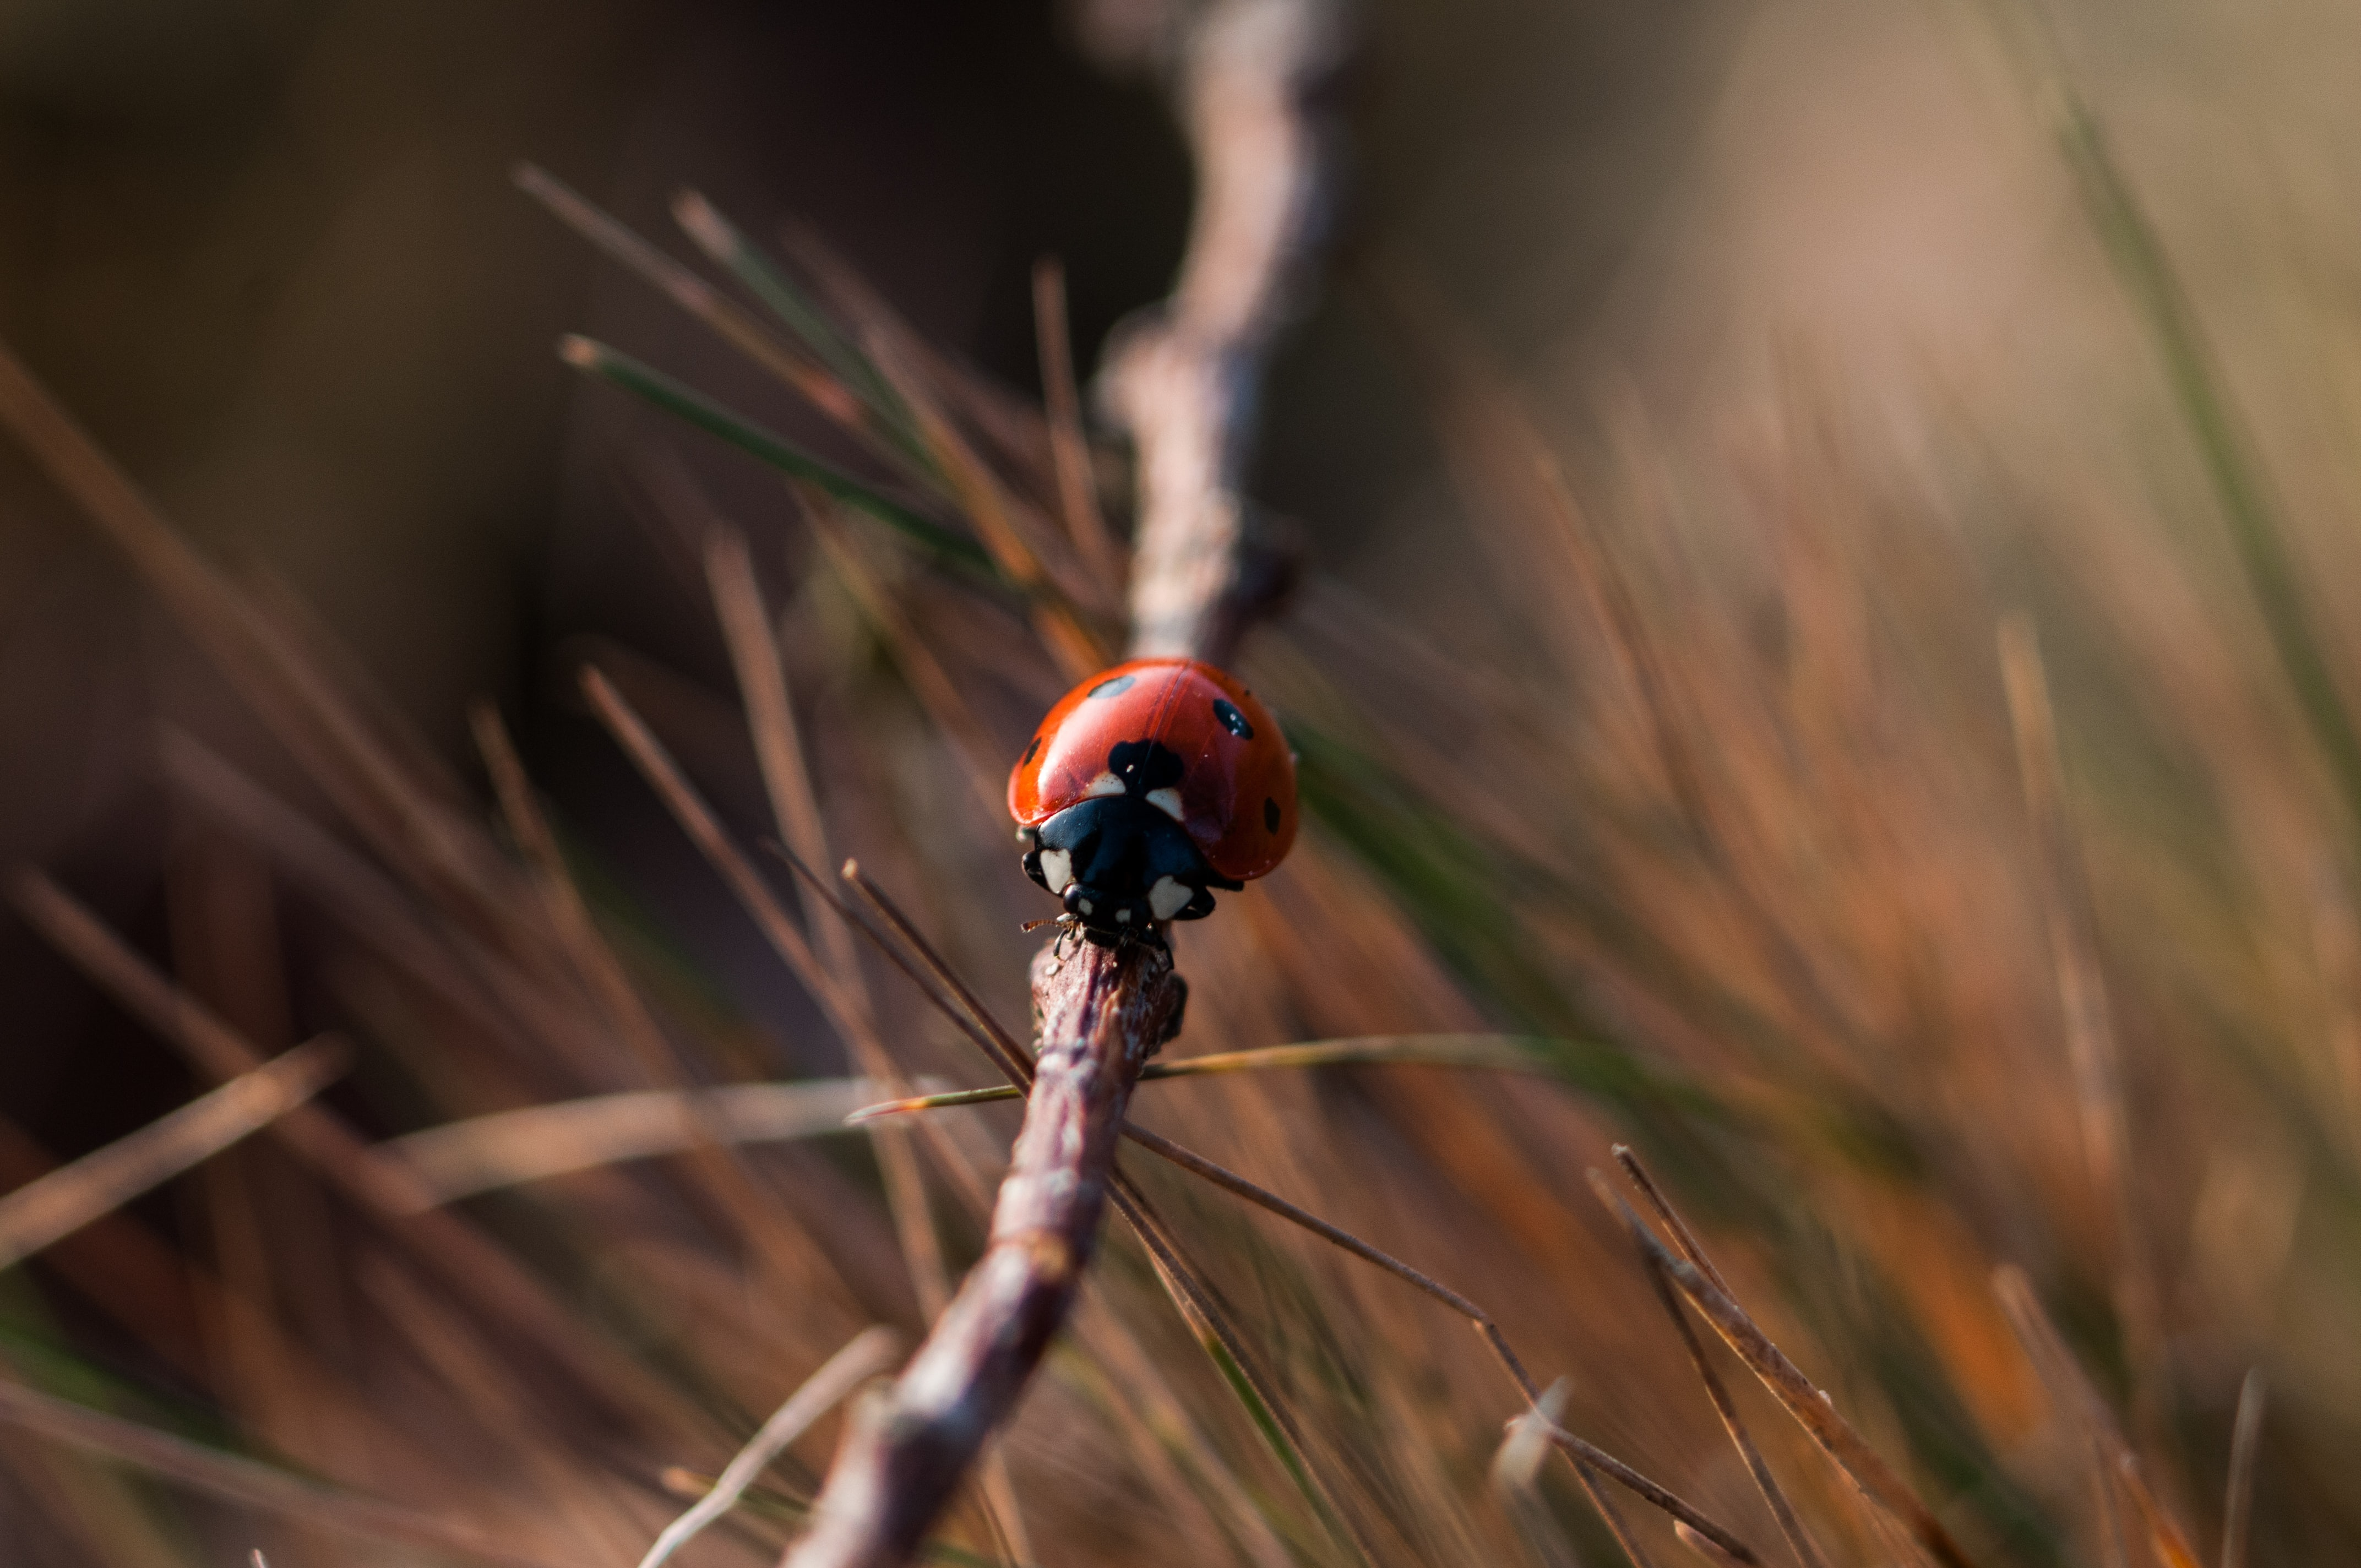 red 7-spotted ladybird on gray wooden tree branch closeup photography